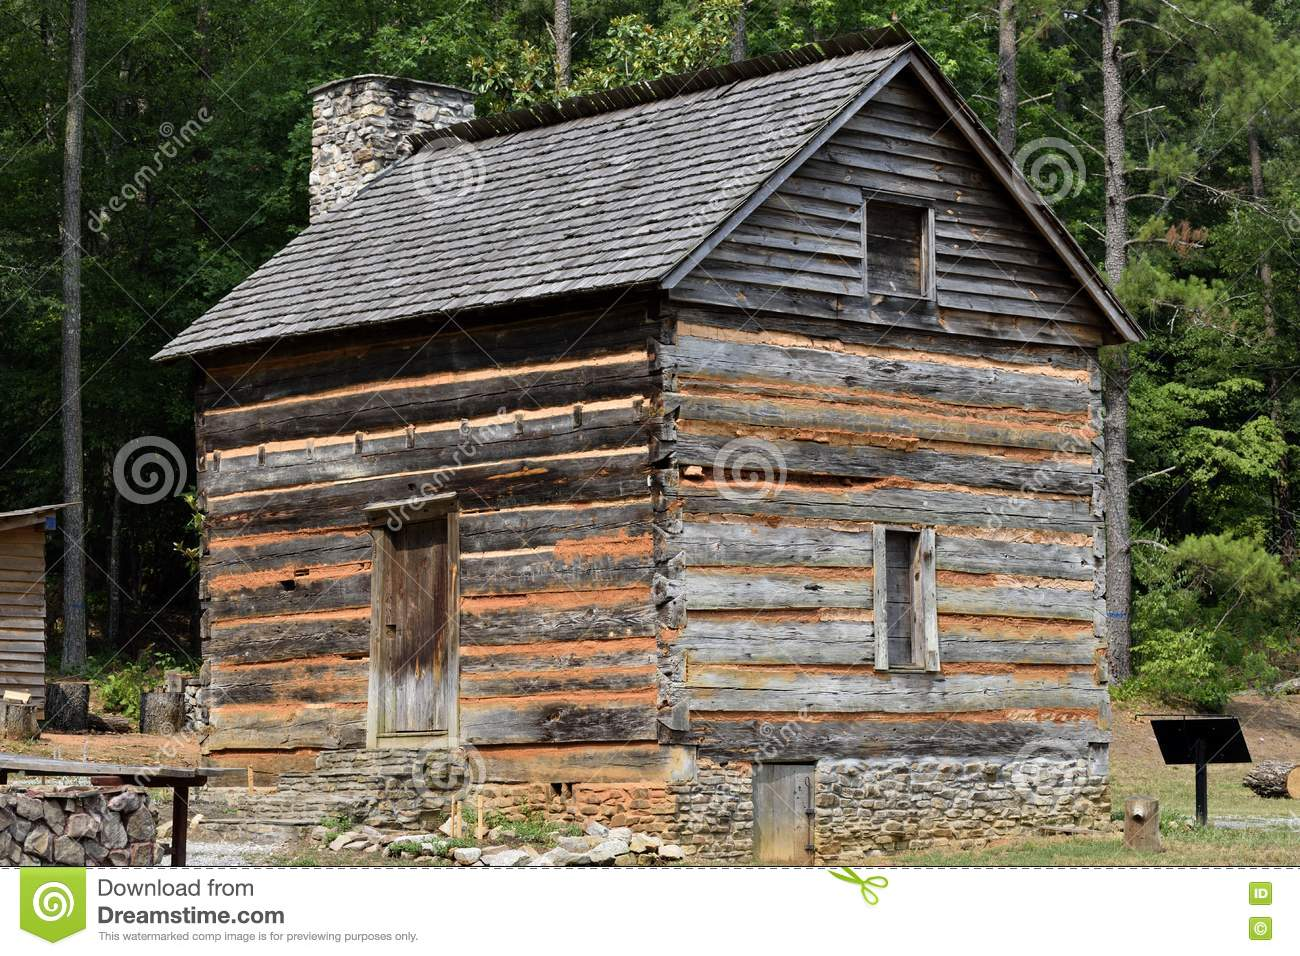 1792 historic log cabin, Georgia, USA